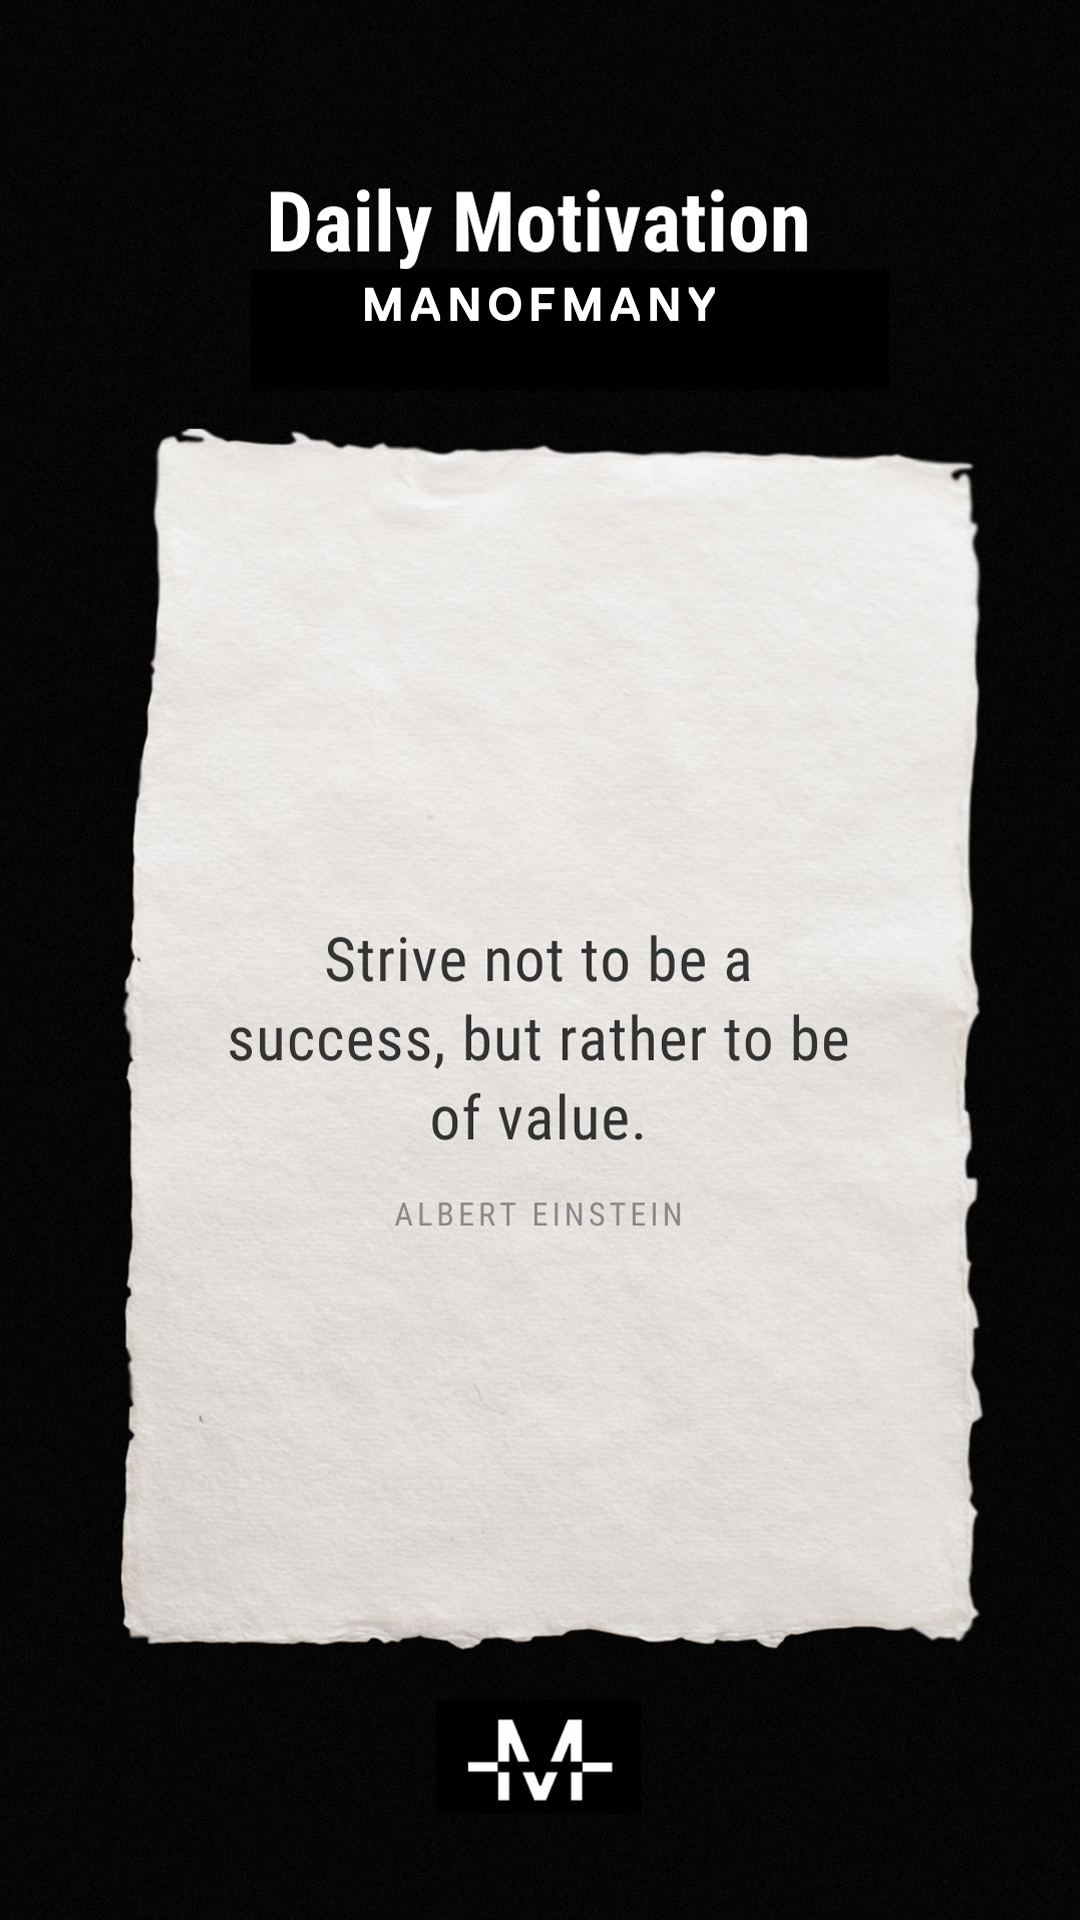 Strive not to be a success, but rather to be of value. –Albert Einstein quote